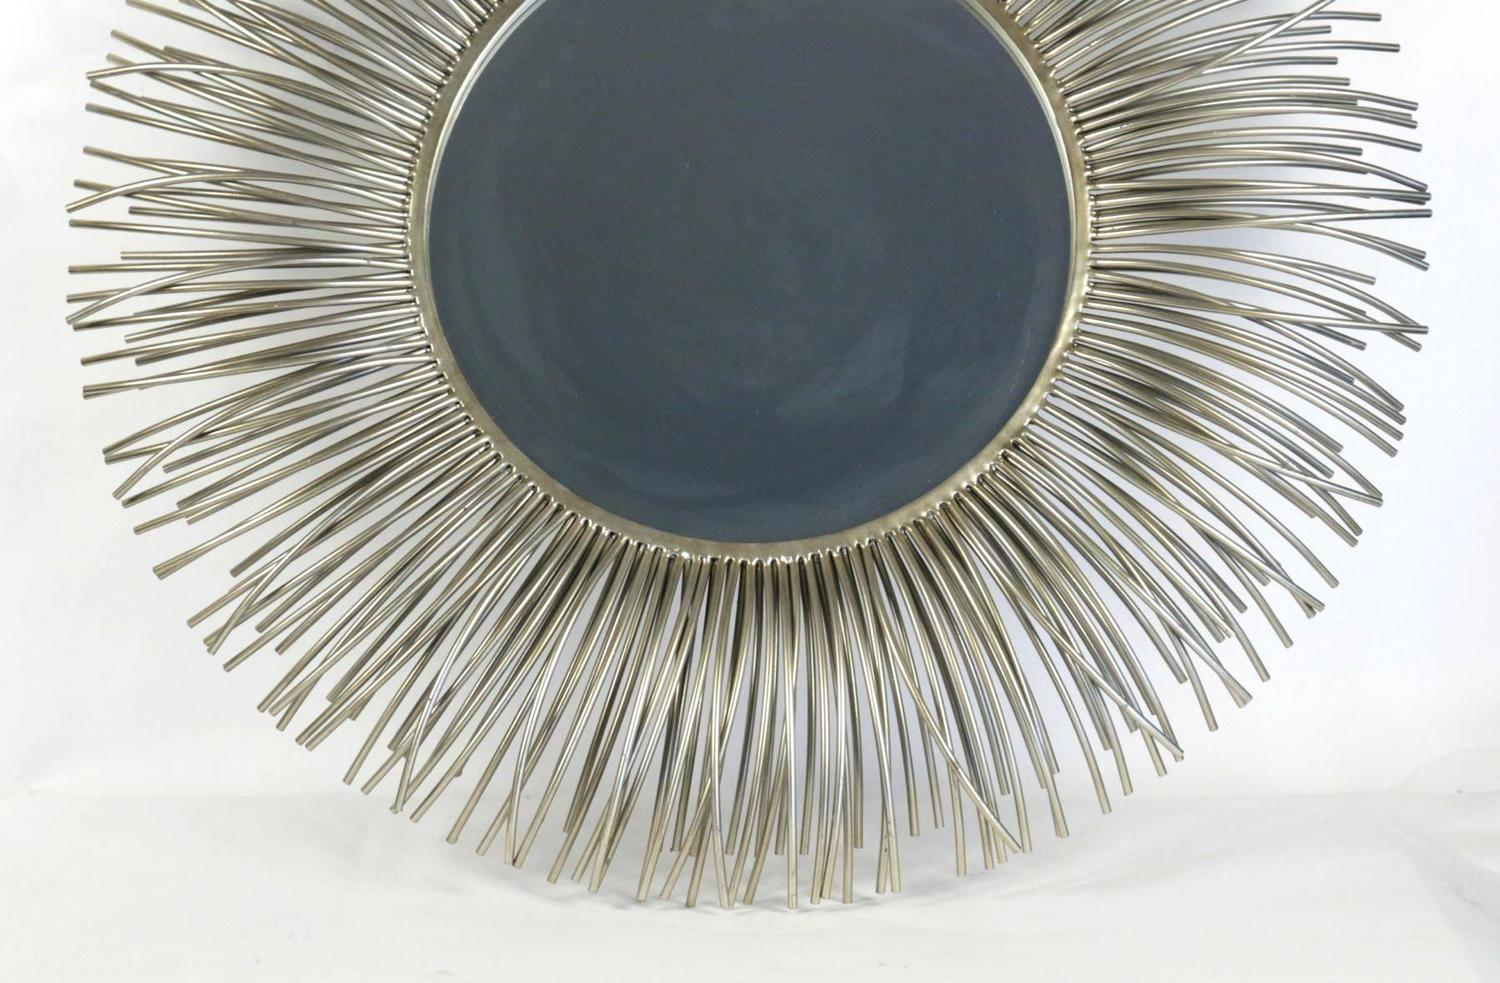 Pair of large round curved rods mirrors for sale at 1stdibs for Large round mirrors for sale